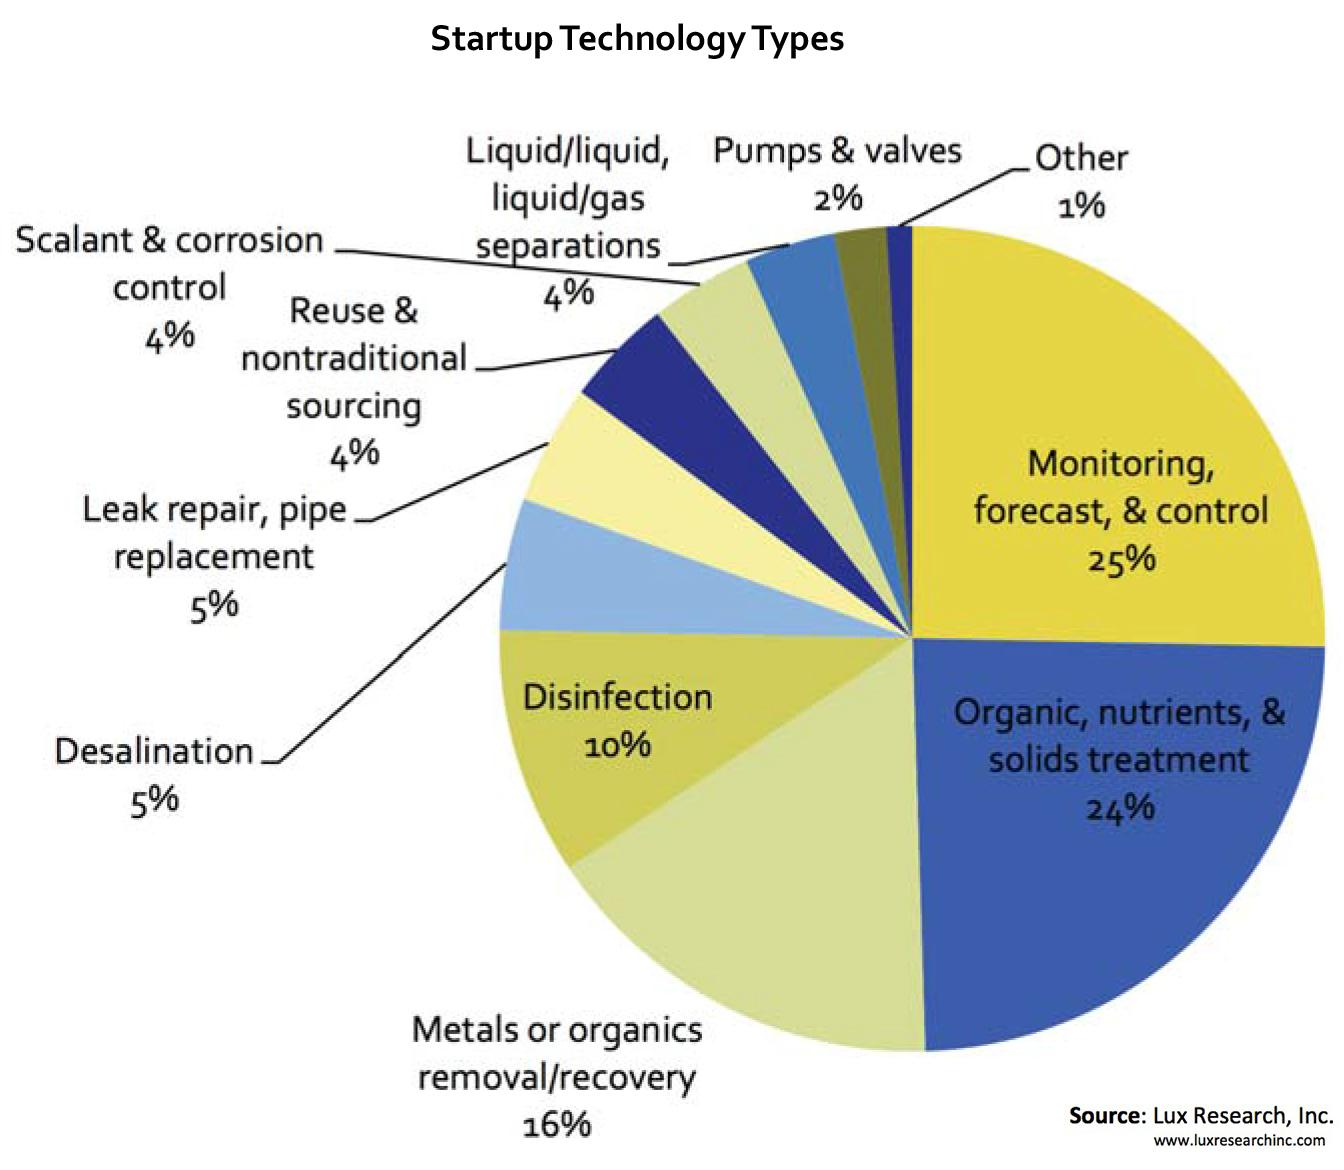 Startup Technology Types